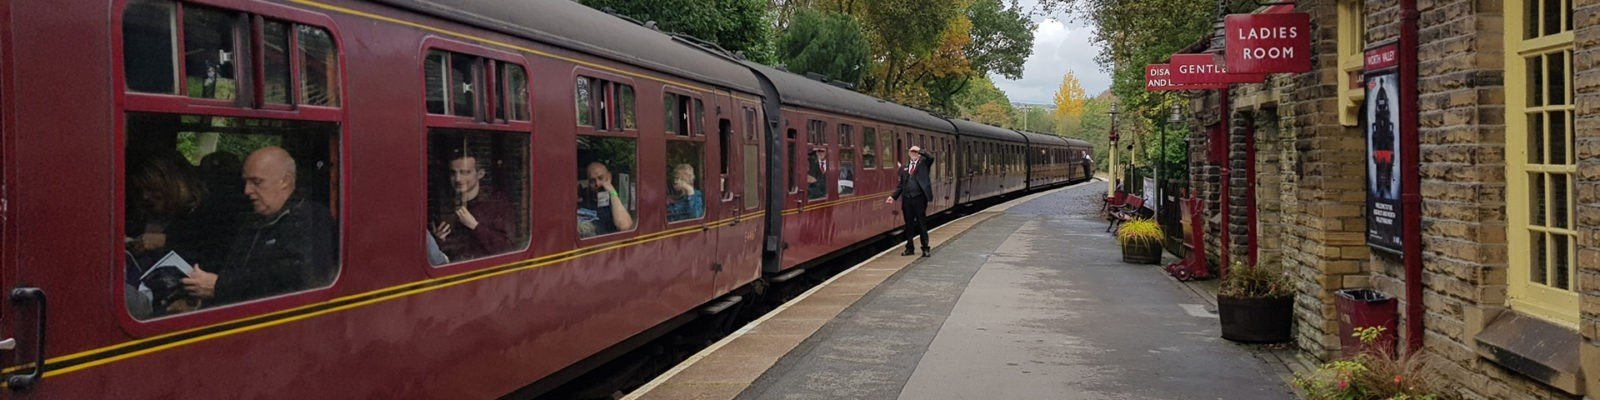 We can see that you have previously requested cancellation of this service through ticket; NFT-768-48602 Please click here to reopen/update your request.